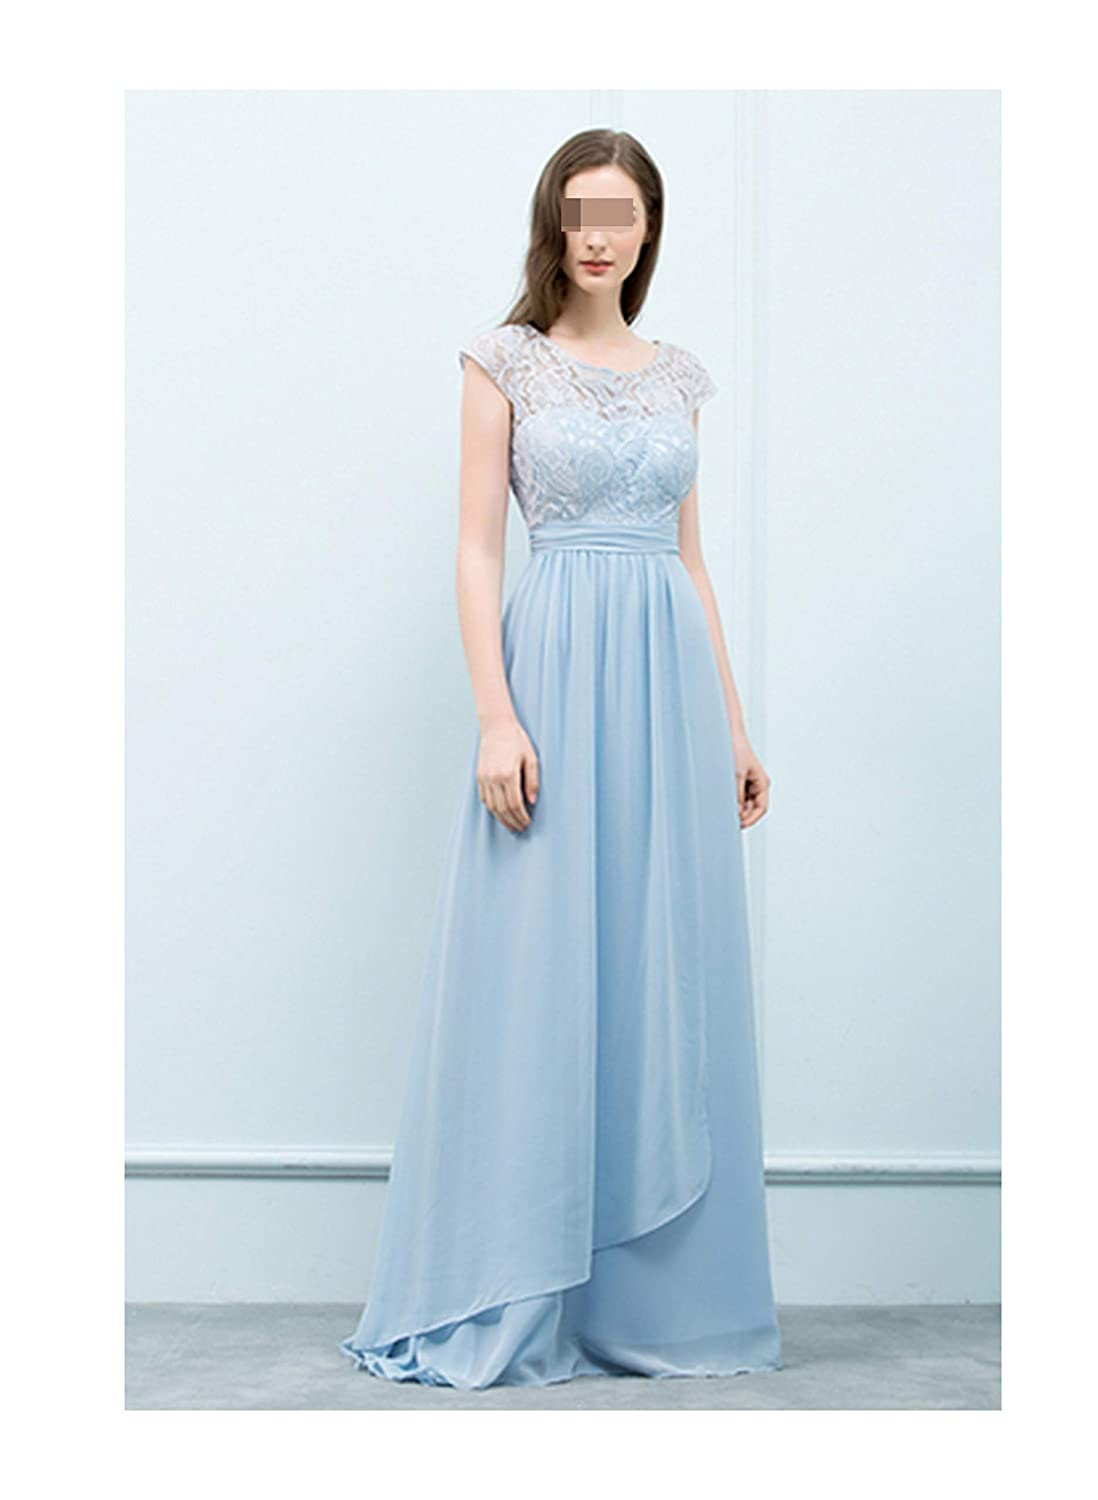 Light Blue Chiffon Evening Dresses Long Formal Party Dress Lace Evening Gowns Zipper Up,Same Color as pic,4